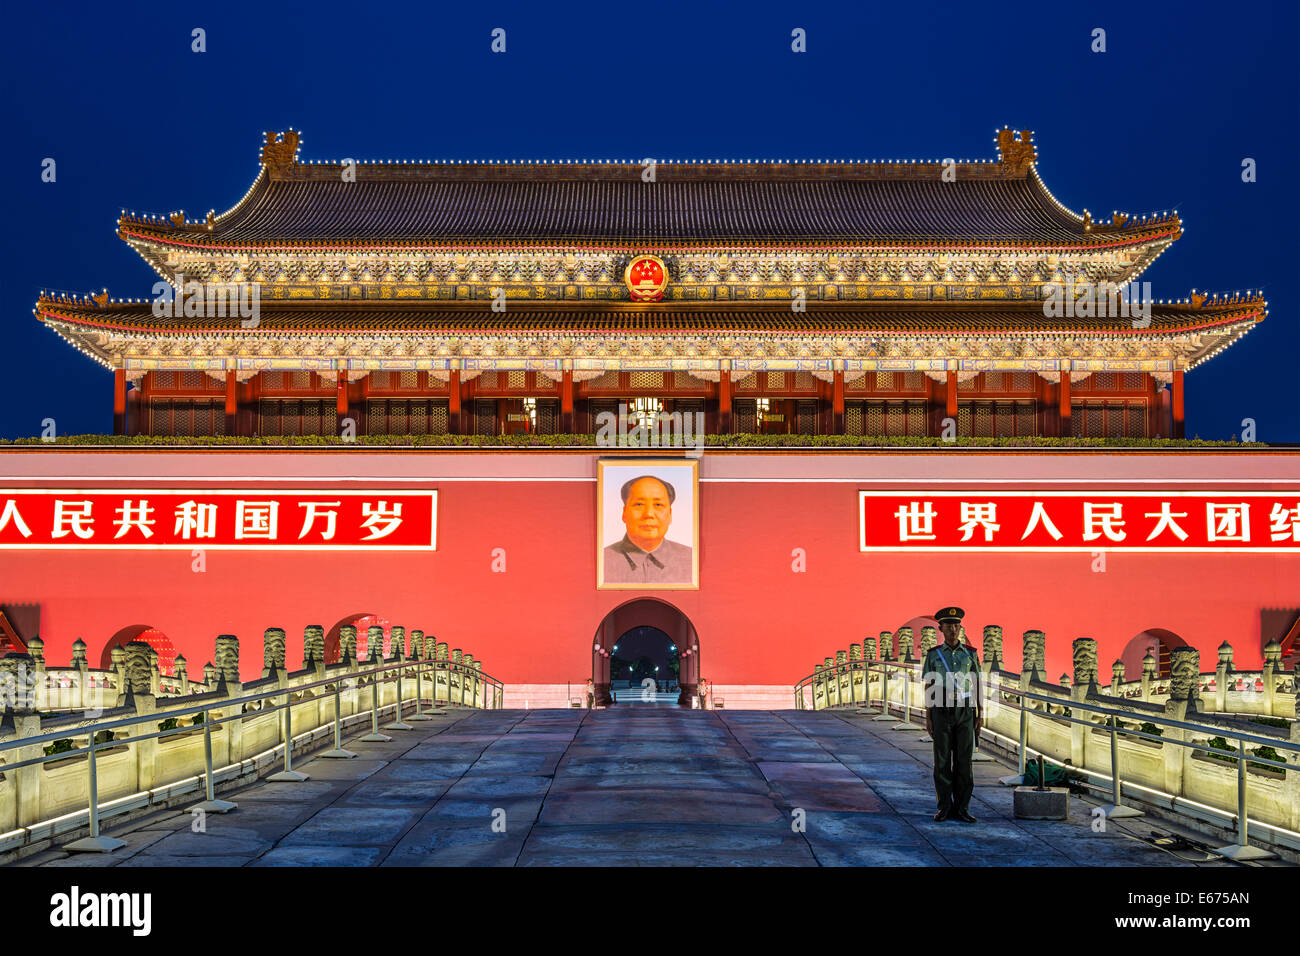 BEIJING, CHINA - JUNE 24, 2014: The Tiananmen Gate at Tiananmen Square. The gate was used as the entrance to the - Stock Image